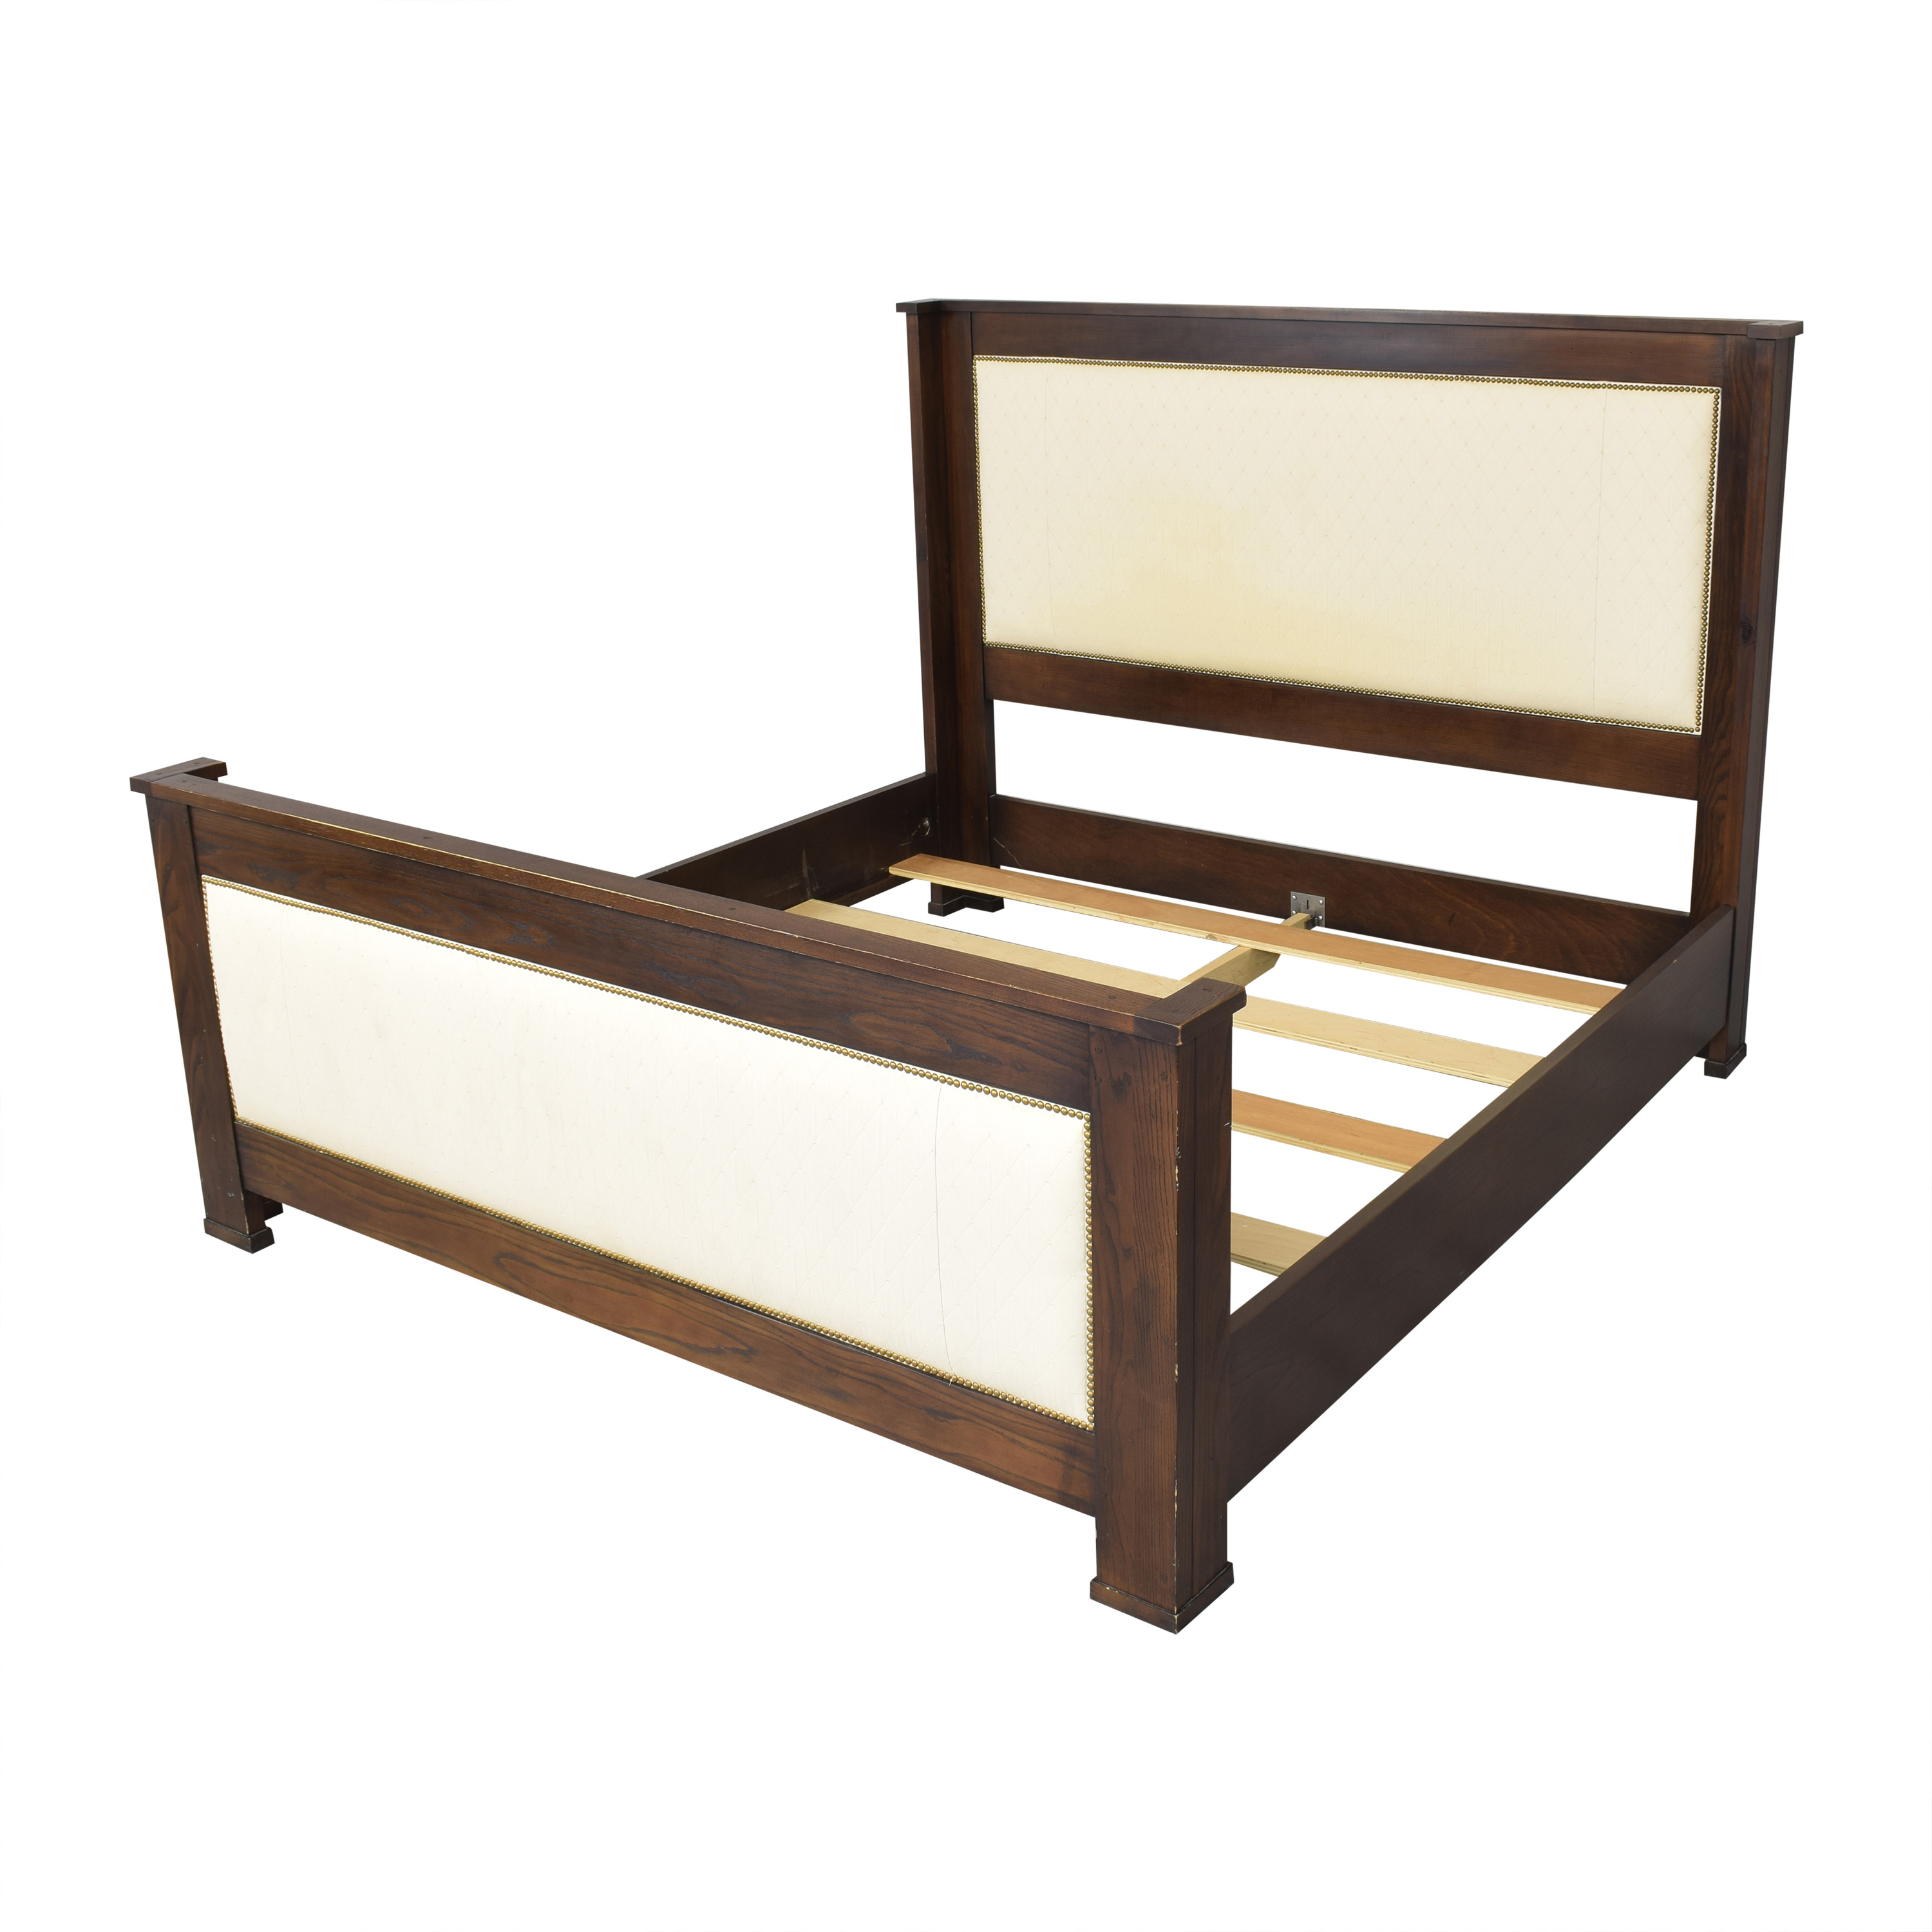 shop Hickory Chair Hickory Chair Upholstered King Bed online